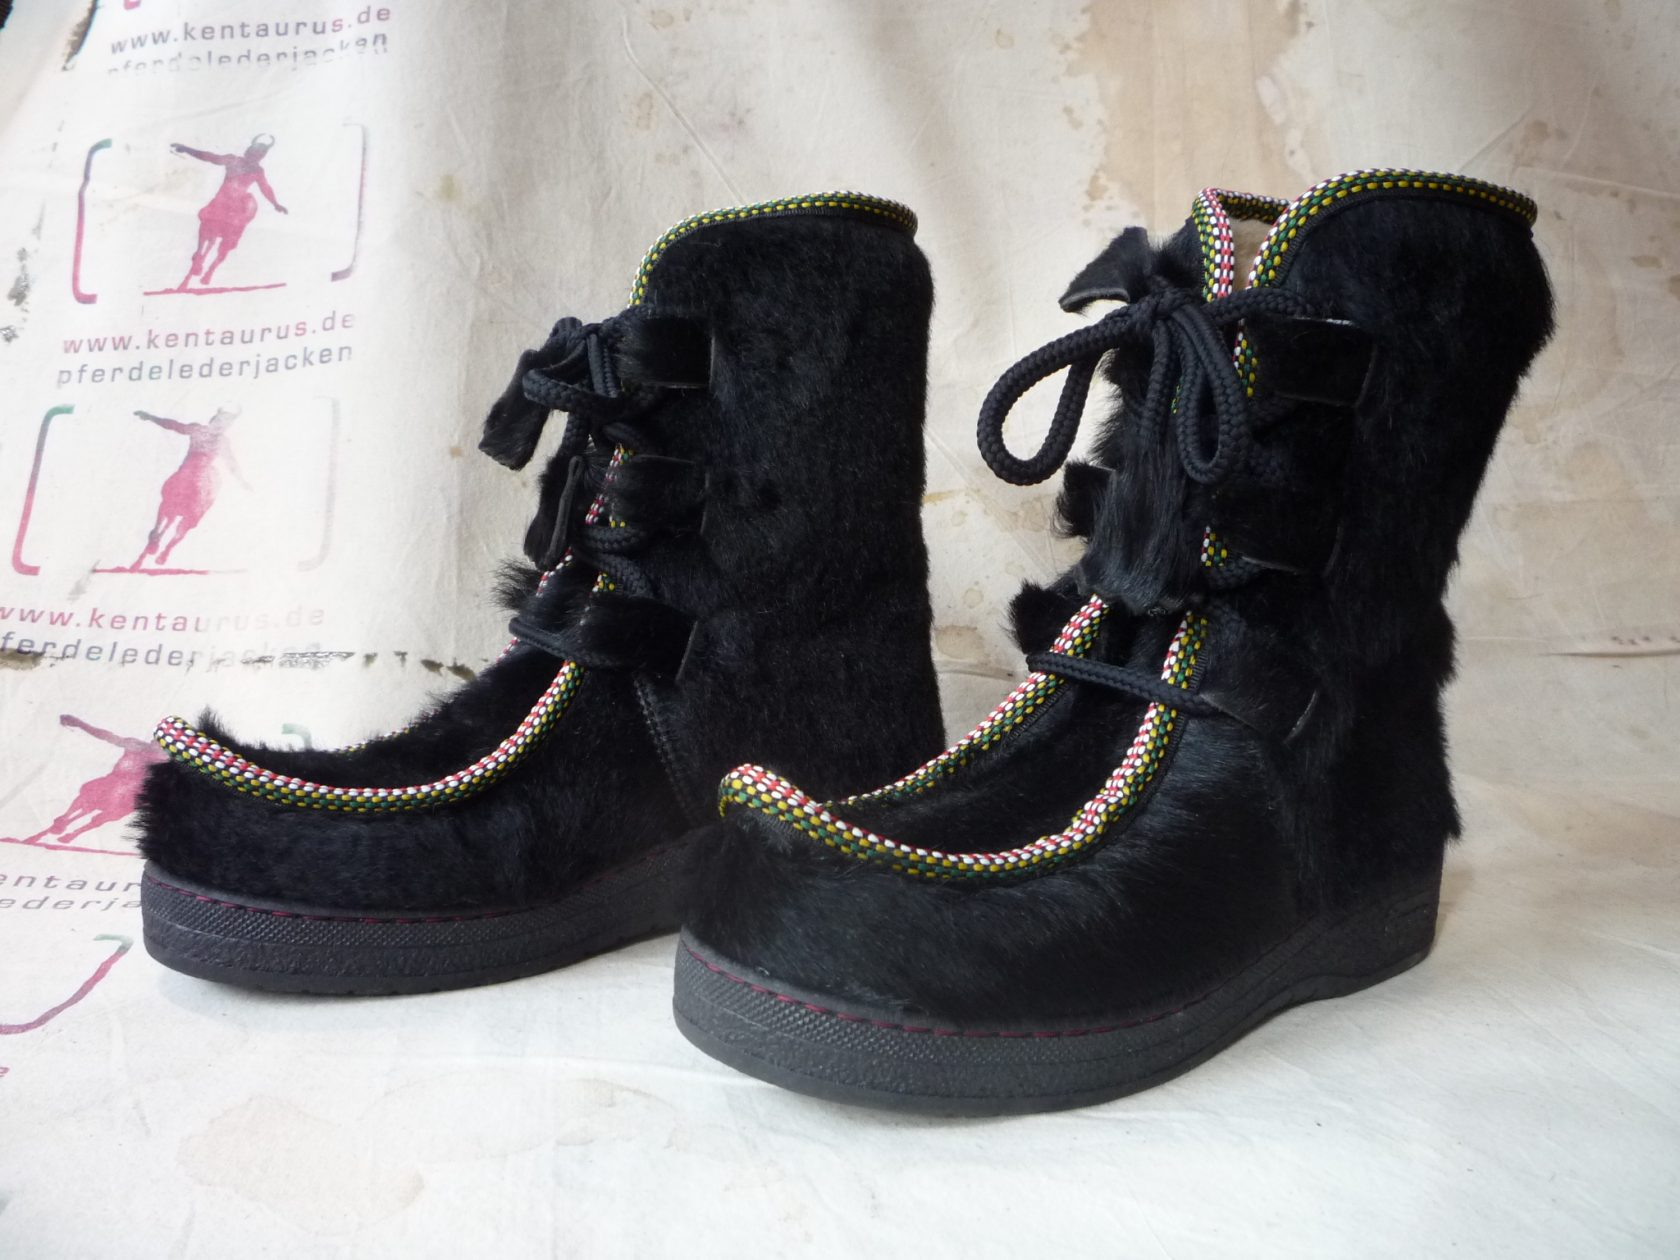 Penelope Chilvers` Impossible Boot black